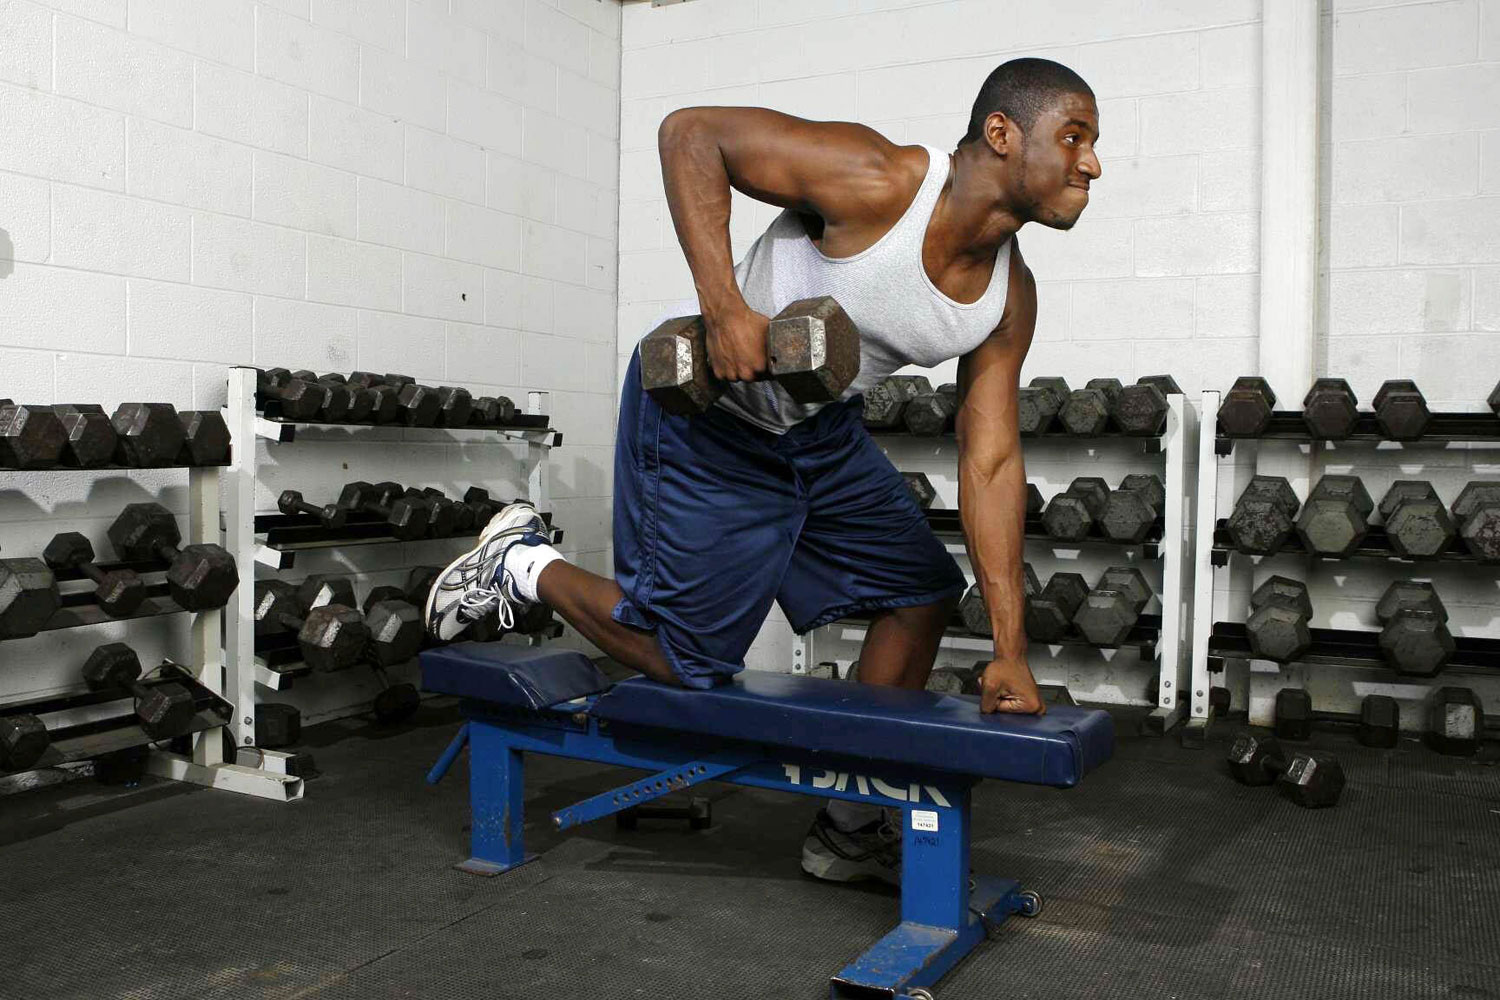 Western Branch quarterback Kevin Newsome lifting weights during a workout in the gym of Western Branch HS in Chesapeake, VA.